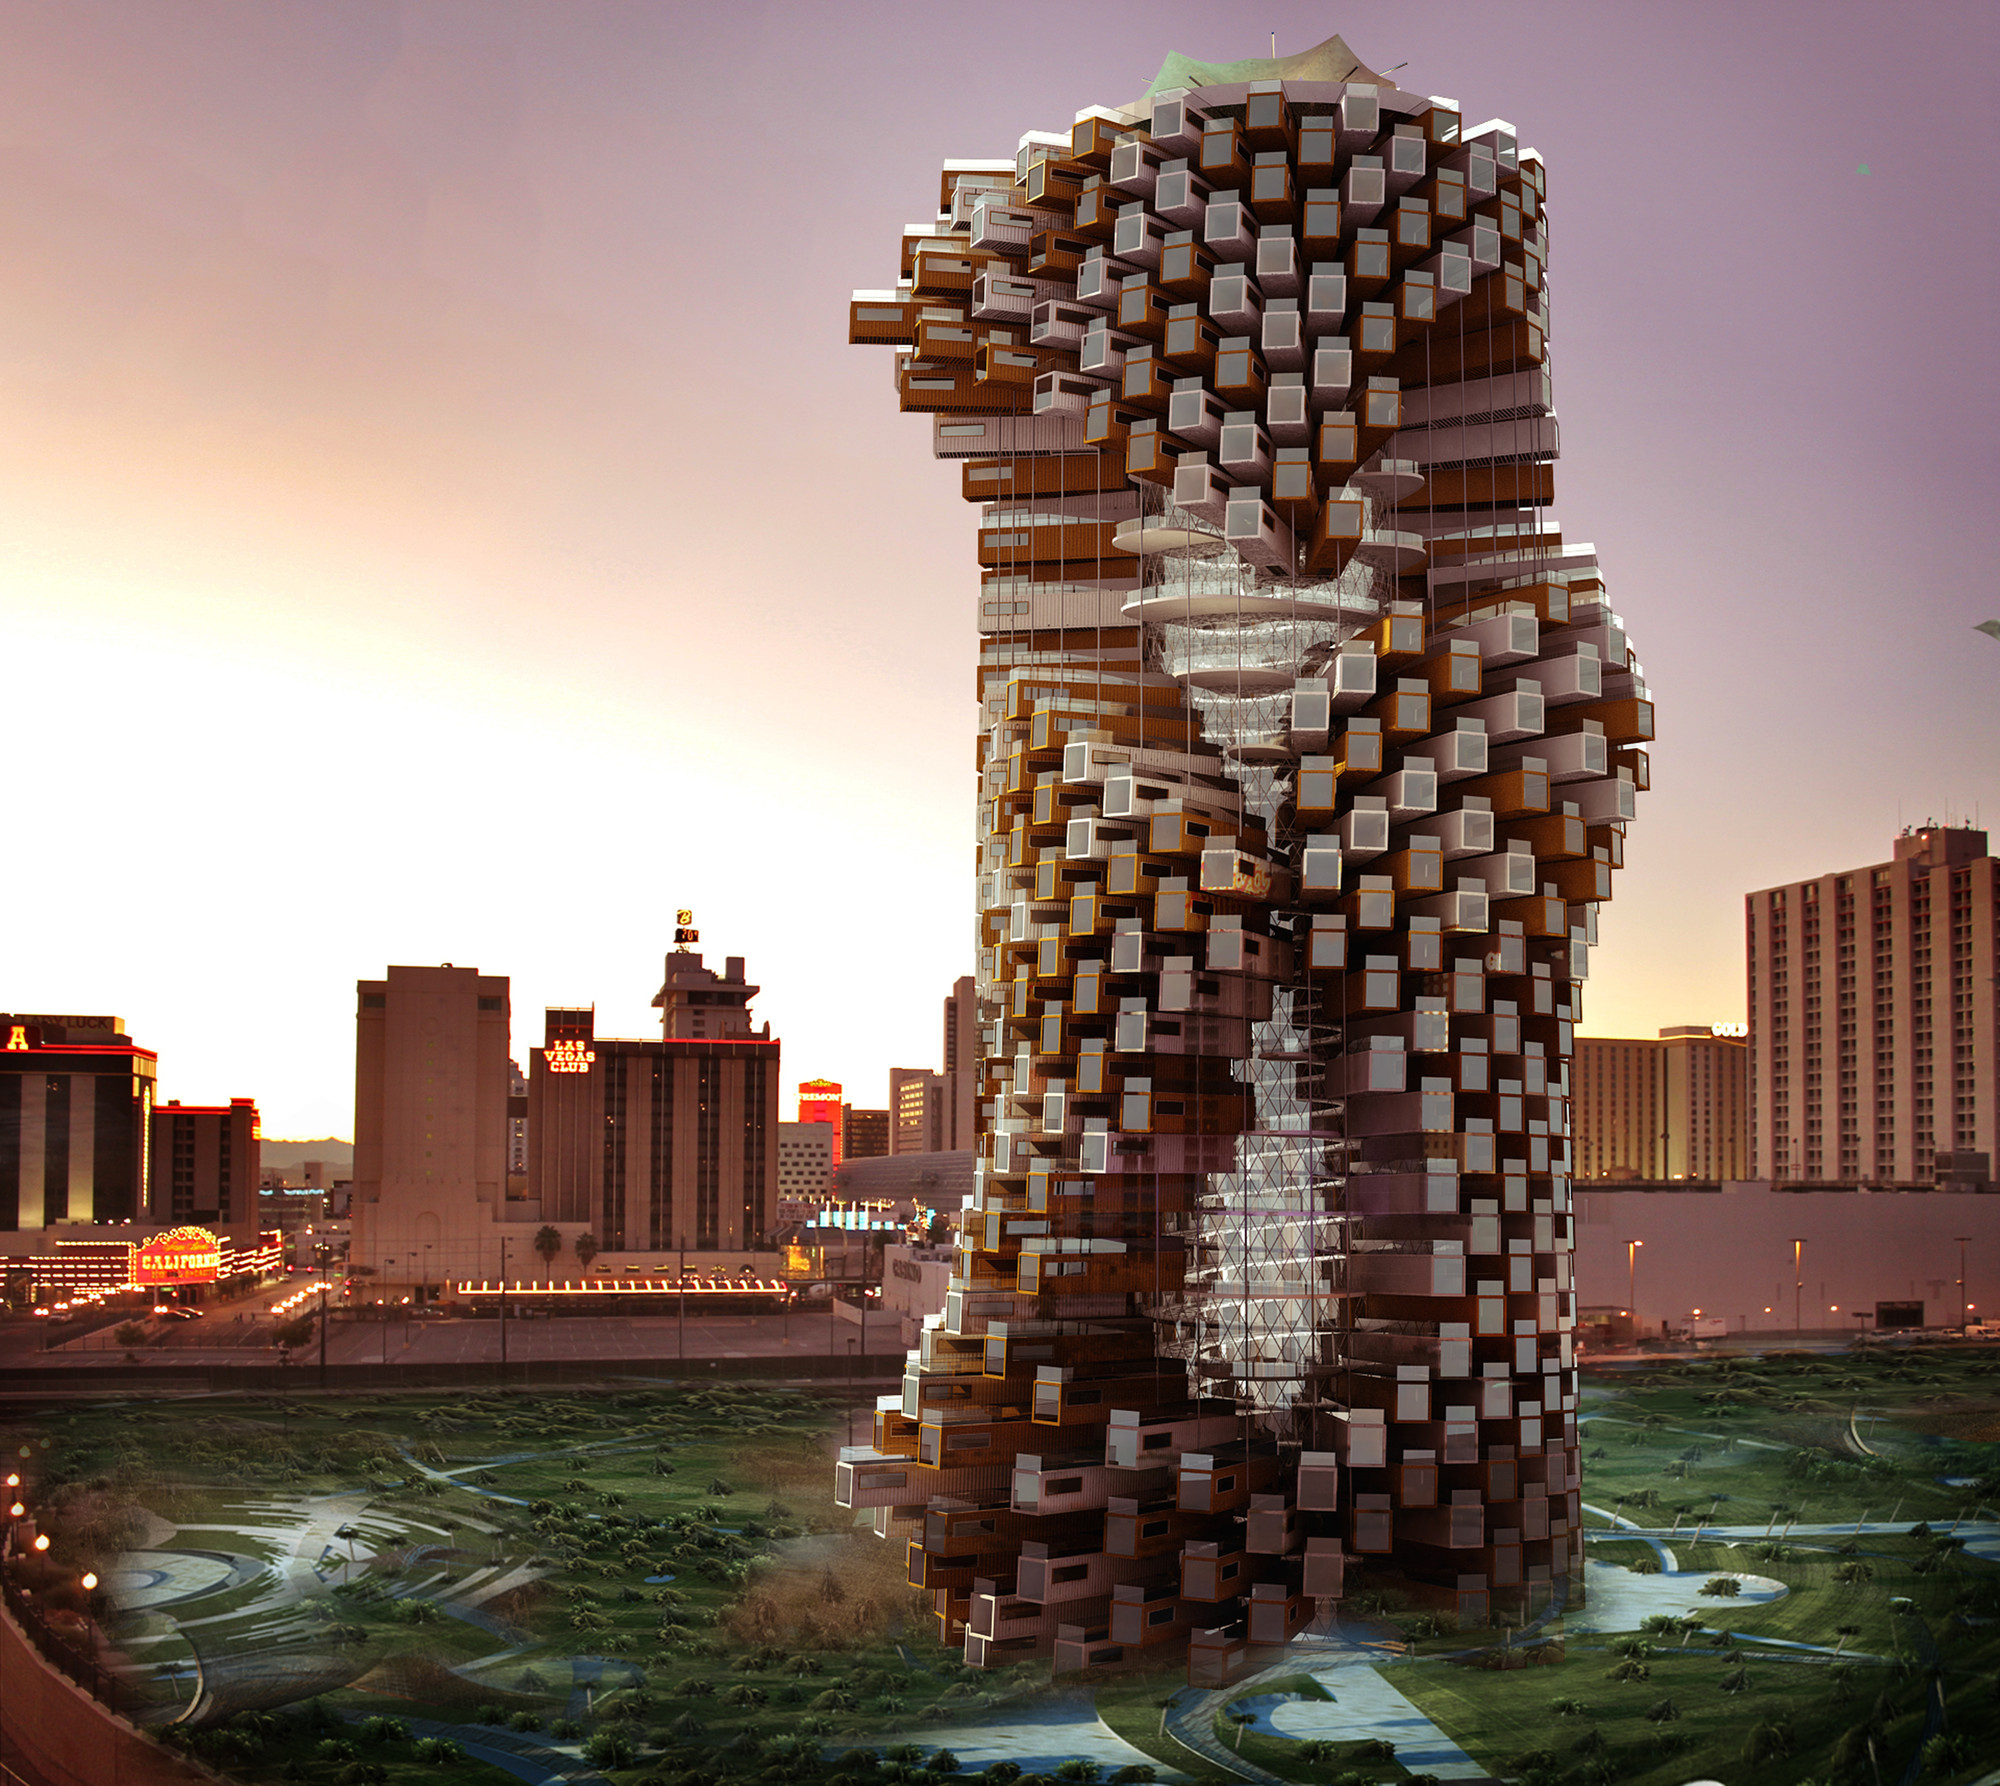 M-Rad Proposes Live-Work Towers to Revitalize Downtown Las Vegas, © M-Rad